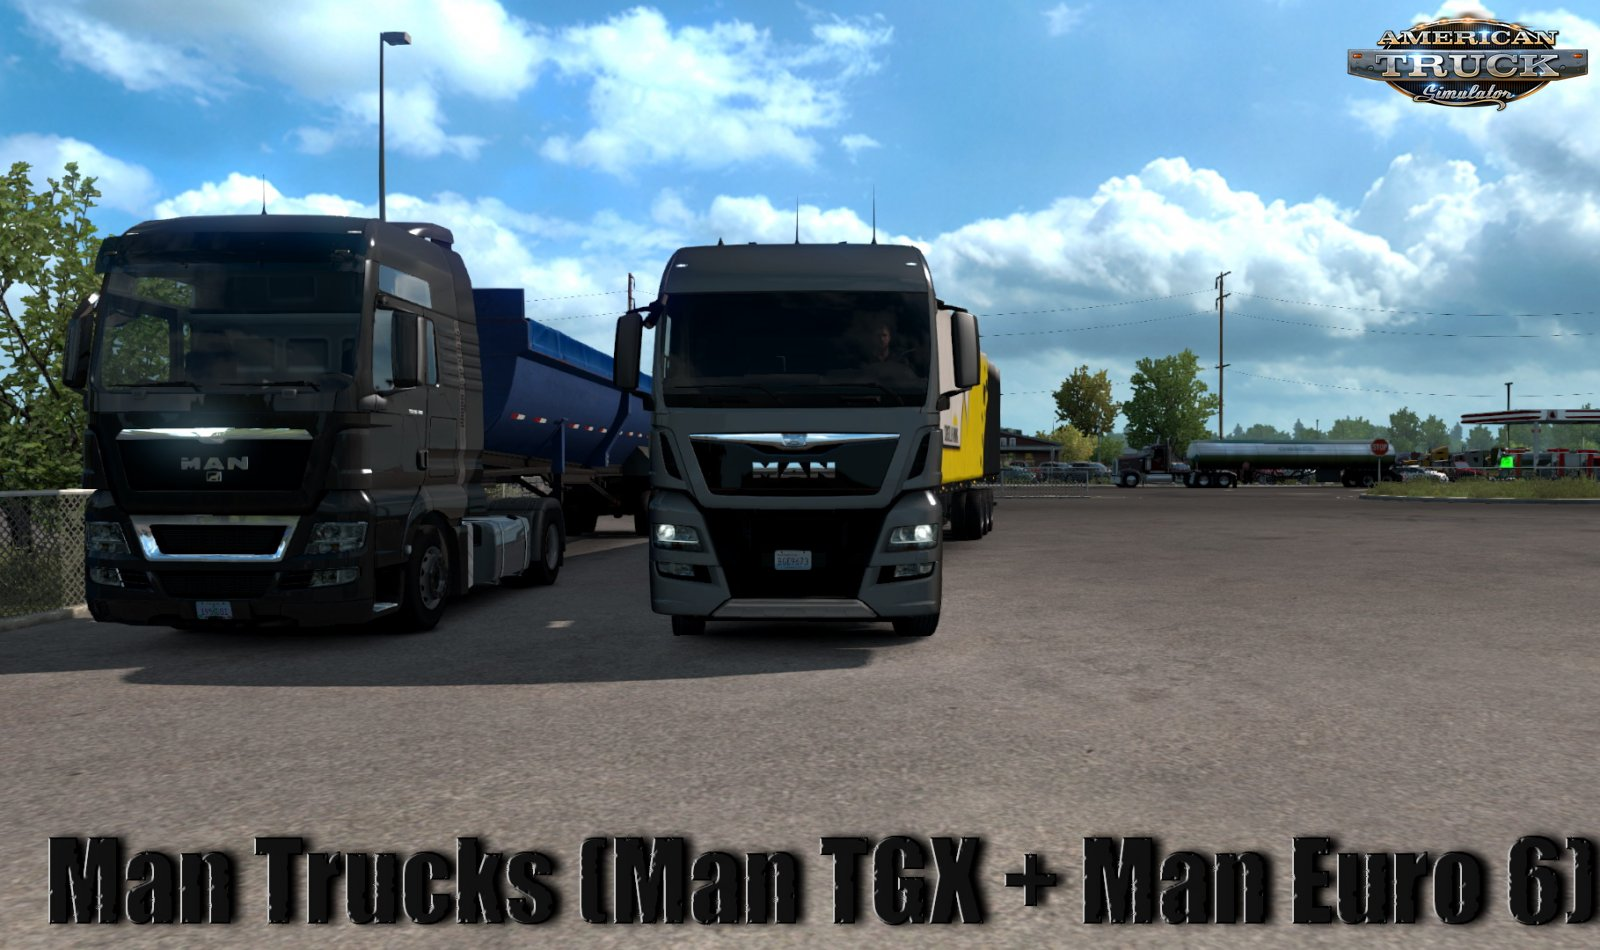 Man Trucks (Man TGX + Man Euro 6) v1.0 (1.35.x) for ATS